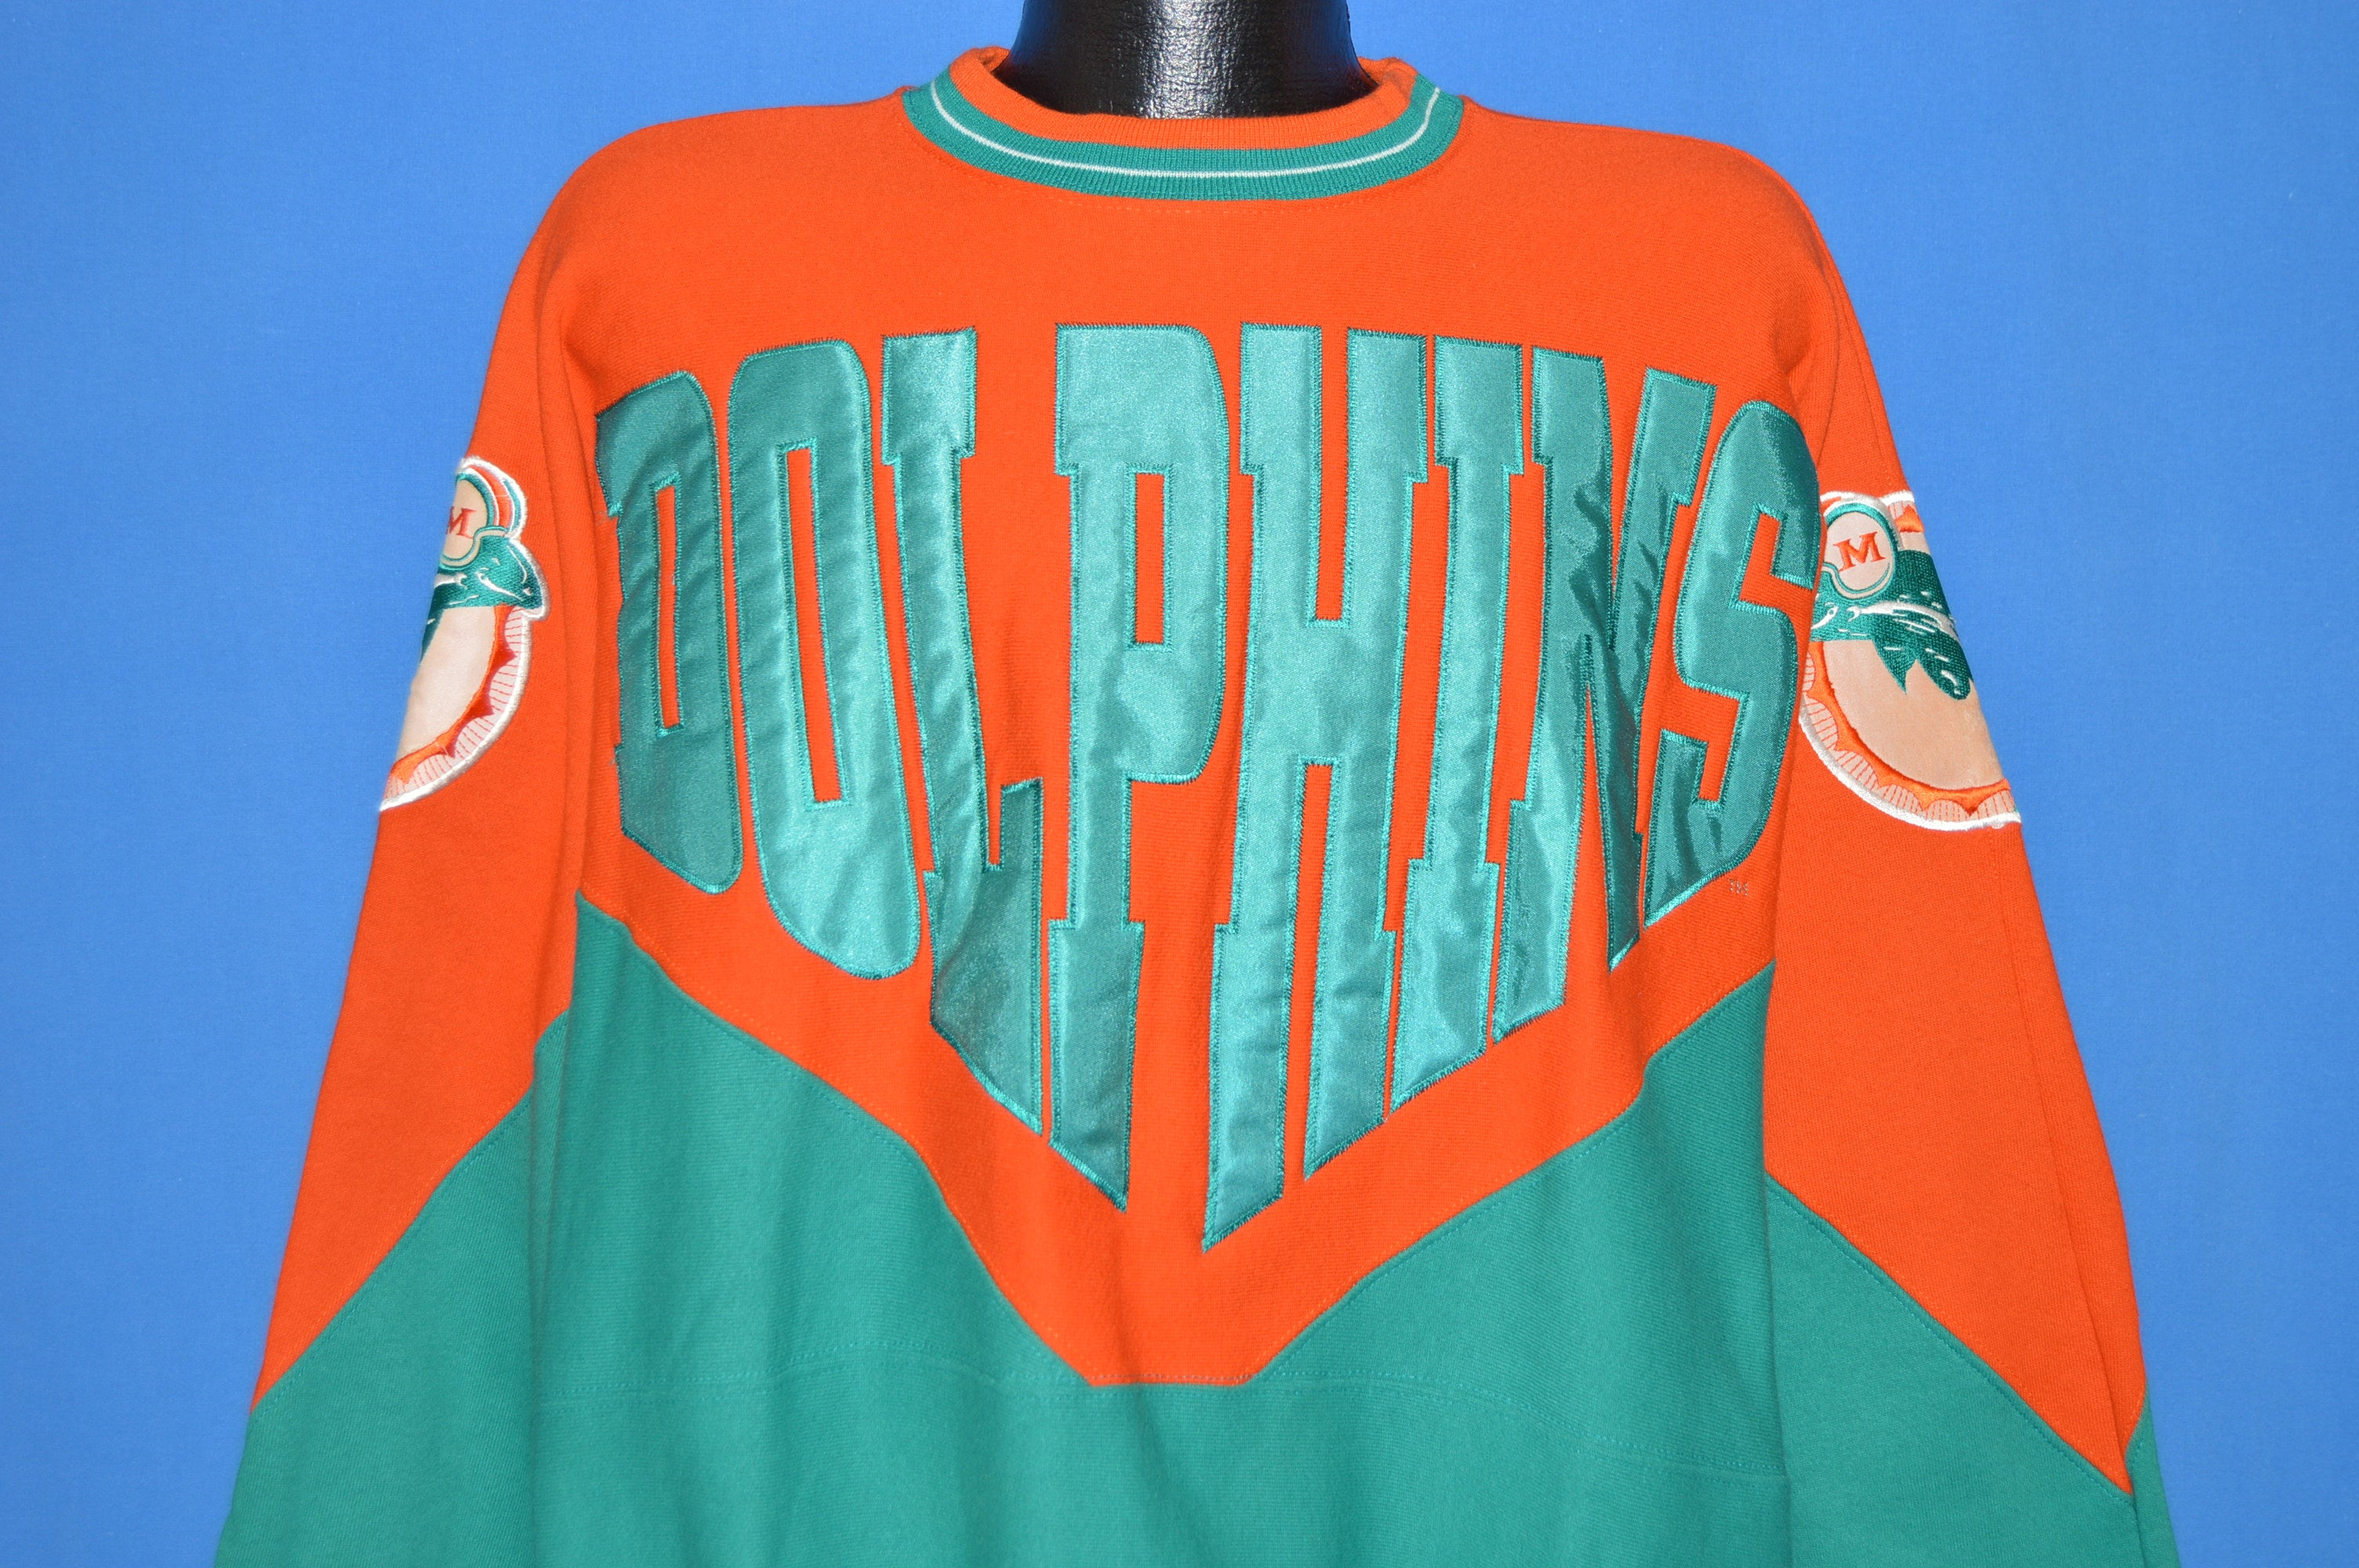 info for ec116 828b7 90s Miami Dolphins Teal Orange Patch Sweatshirt Extra Large ...